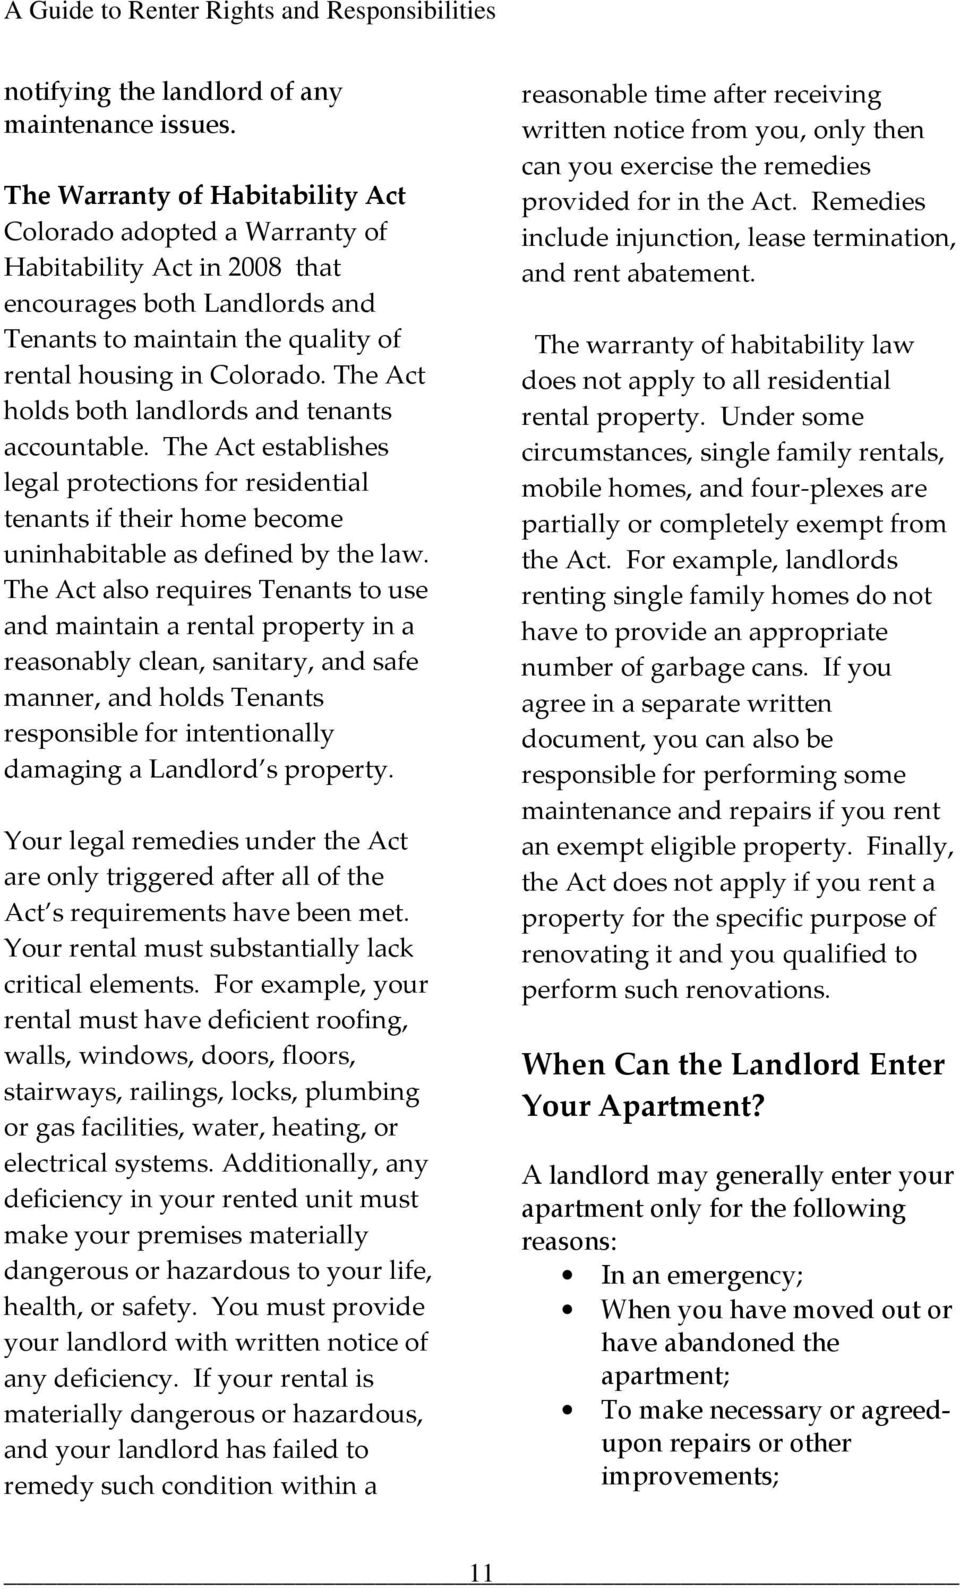 The Act holds both landlords and tenants accountable. The Act establishes legal protections for residential tenants if their home become uninhabitable as defined by the law.